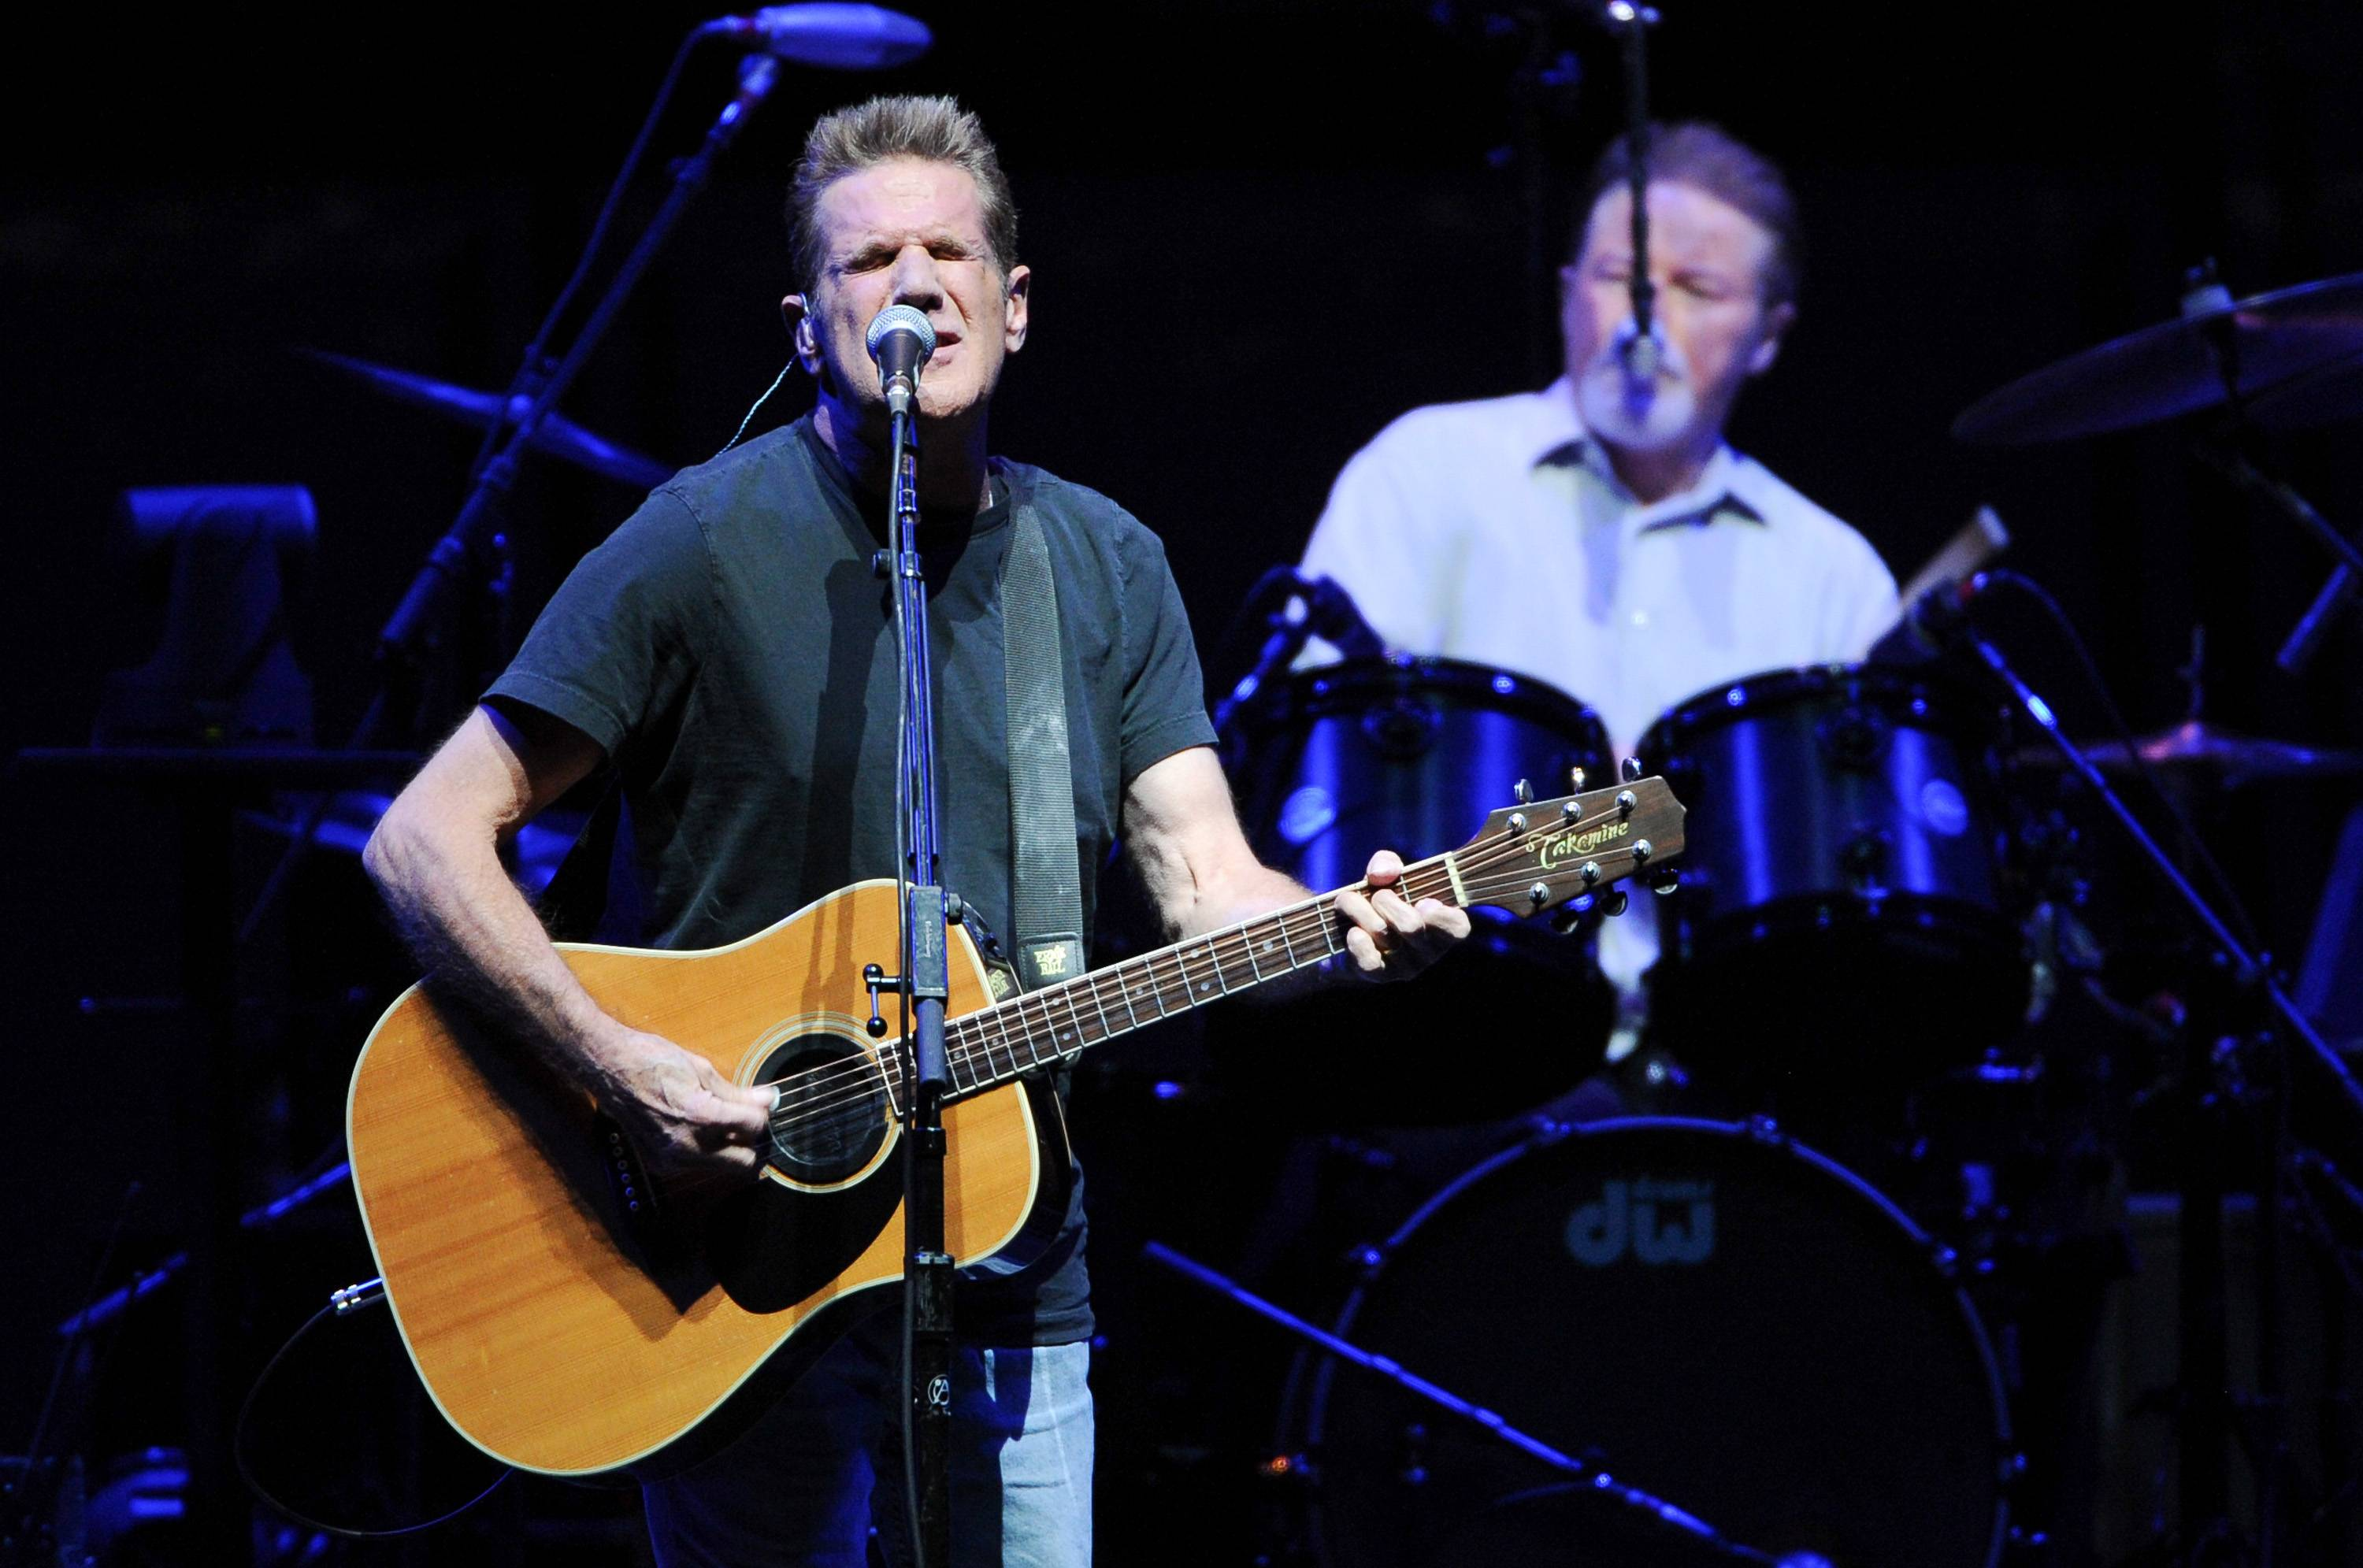 Musicians Glenn Frey, left, and Don Henley, of the Eagles perform. Frey died Jan. 18 at age 67. He and Henley, like many artists of their generation, sang backup and collaborated with other famous musicians in their early years.